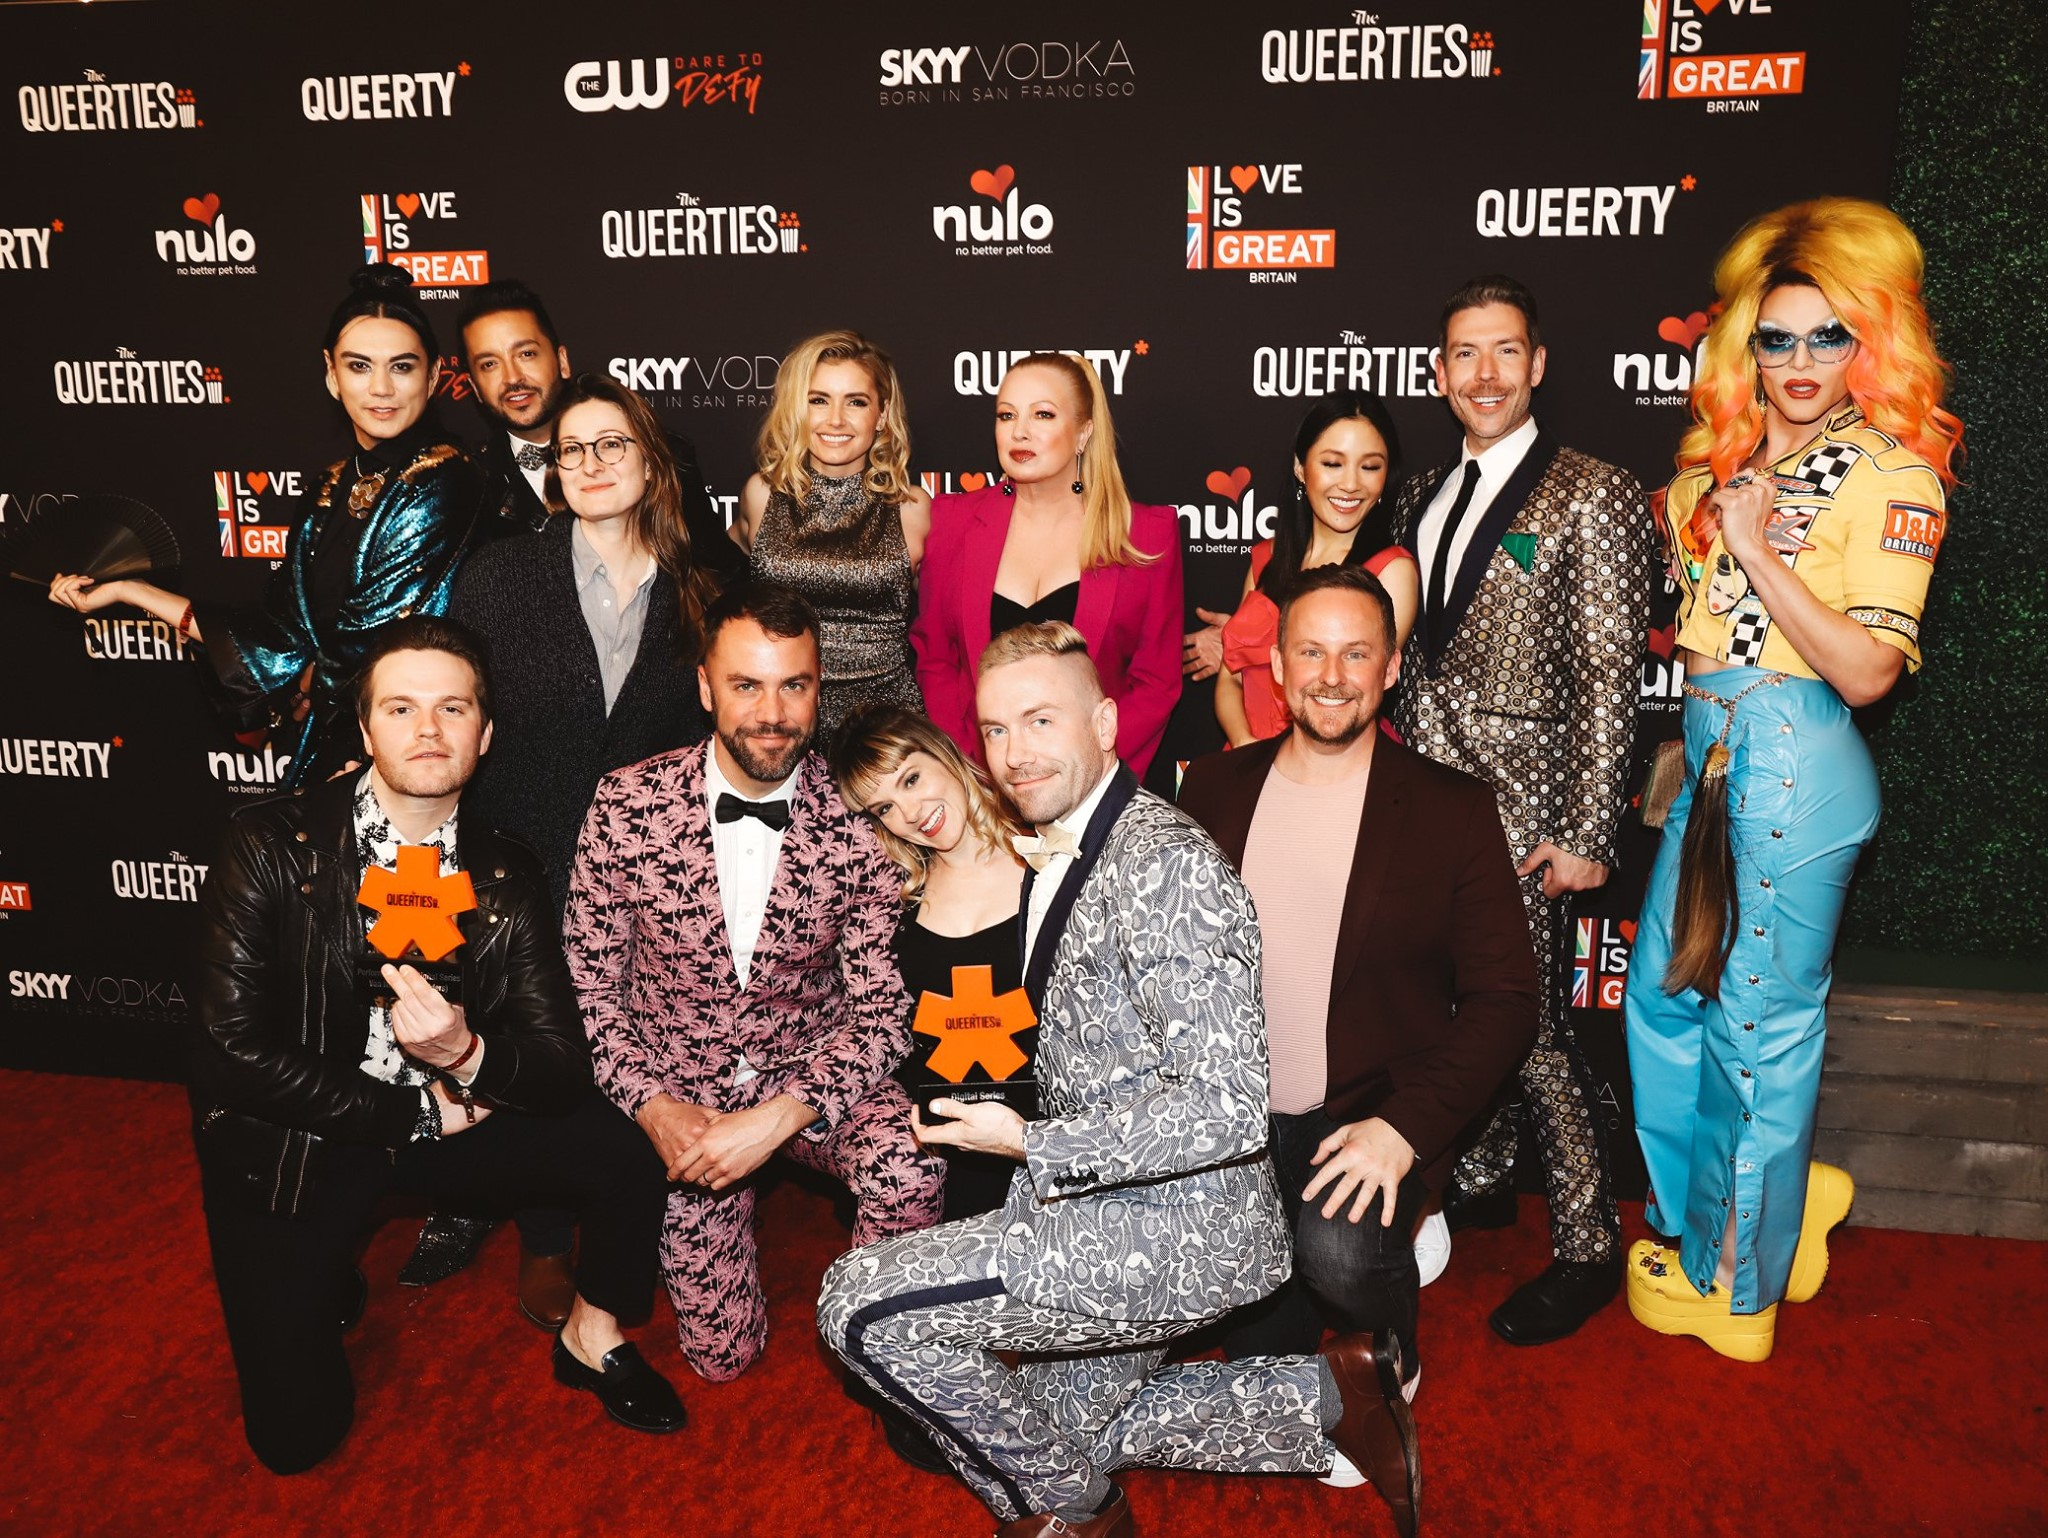 The cast of Eastsiders on Netlix, including Alaska, Kit Williamson and Traci Lords, poses for their Queerties award at the Queerties event in Los Angeles.